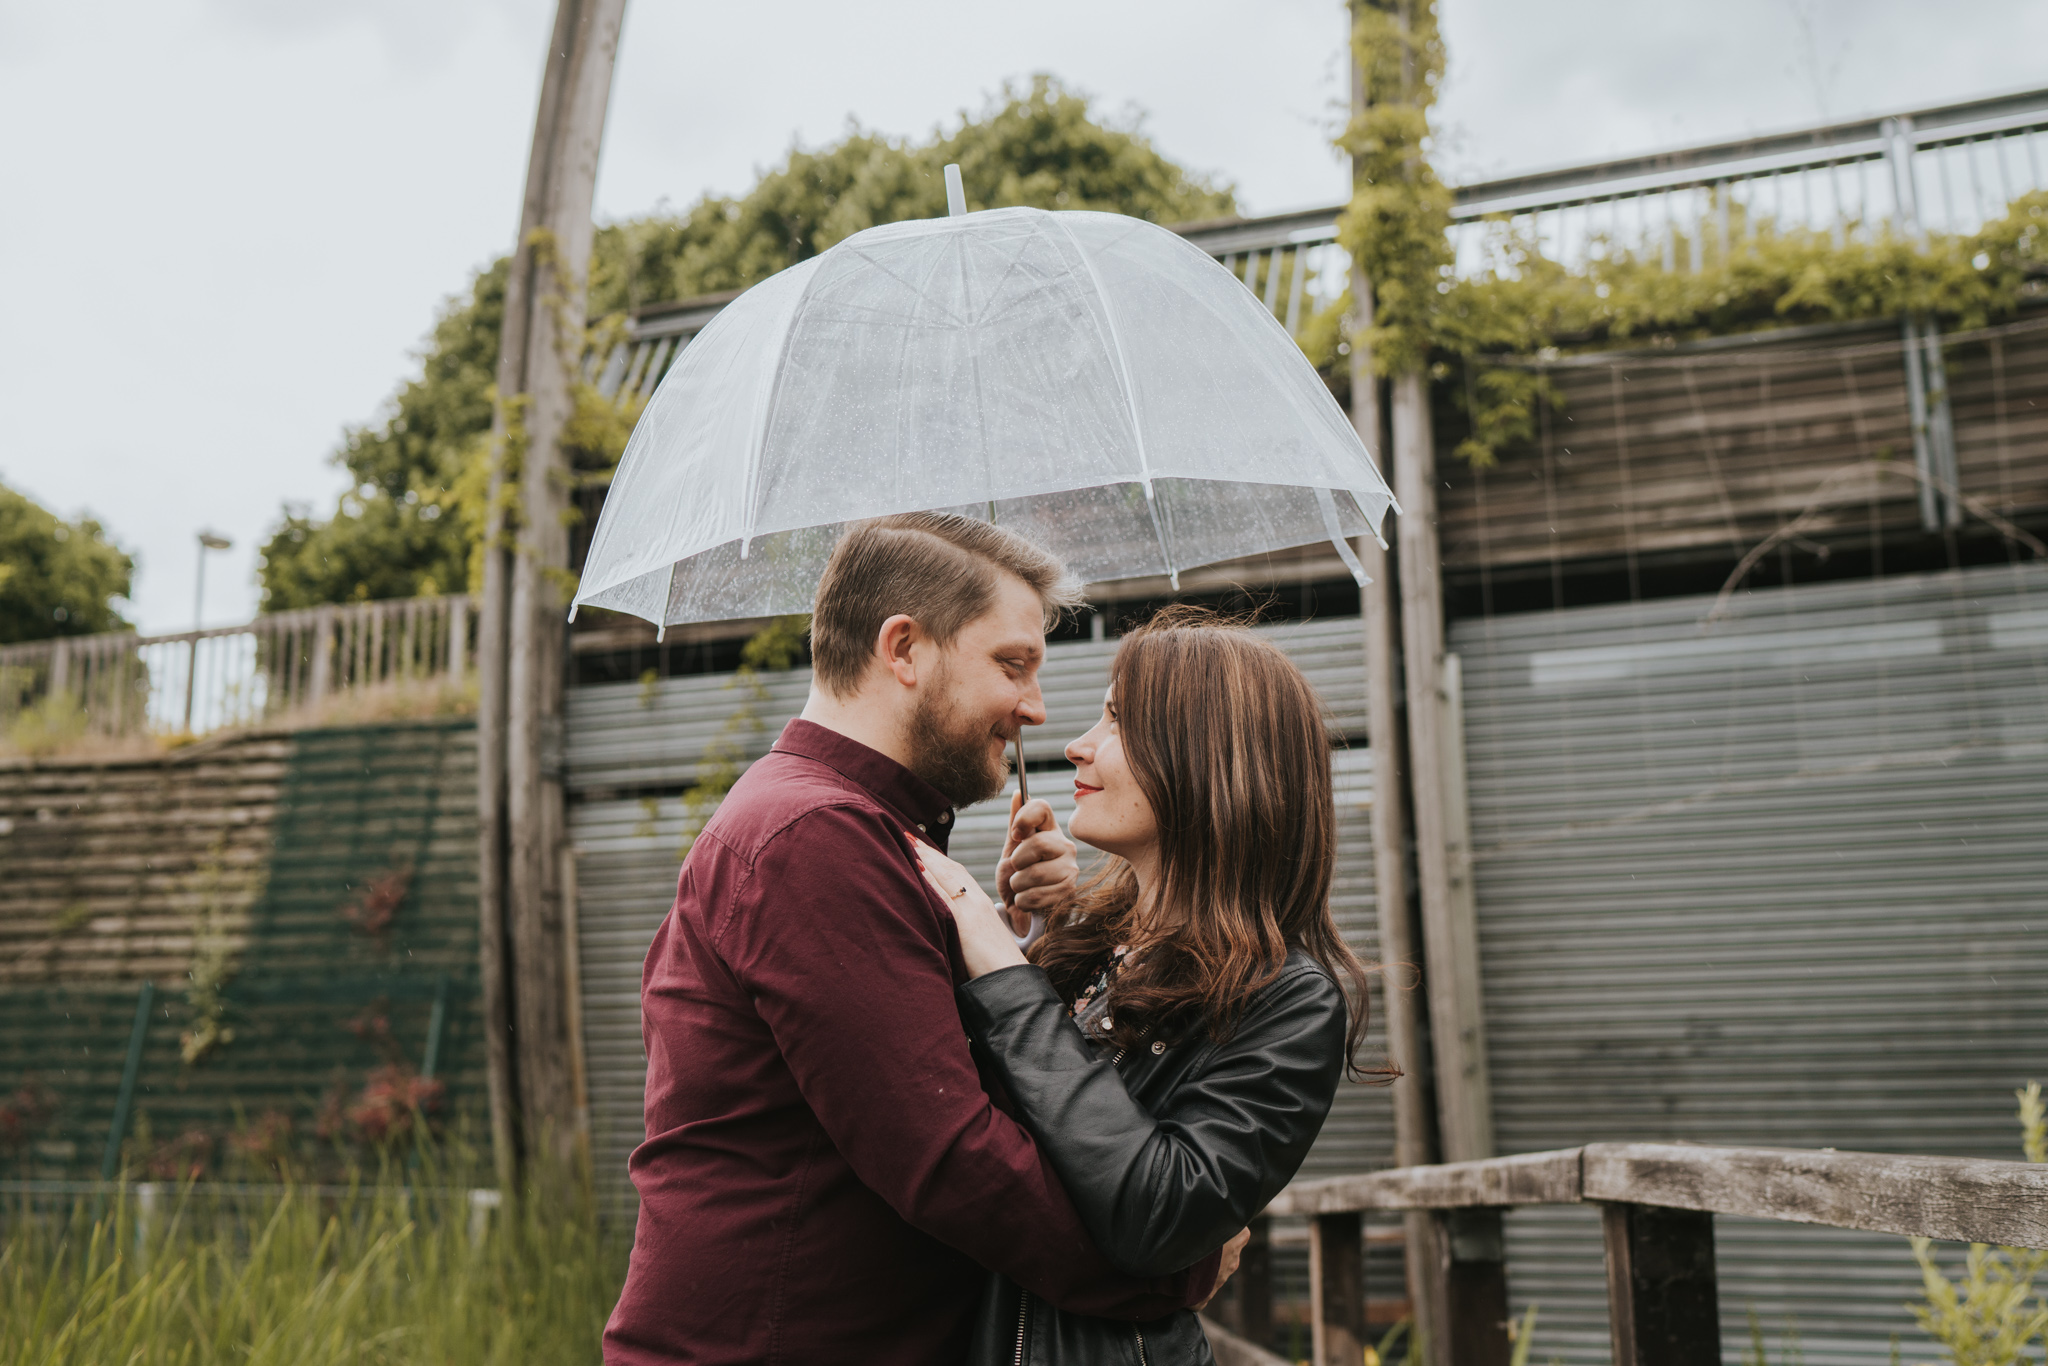 natalie-john-urban-london-engagement-grace-elizabeth-colchester-essex-alternative-wedding-photographer-essex-suffolk-norfolk-devon (29 of 66).jpg